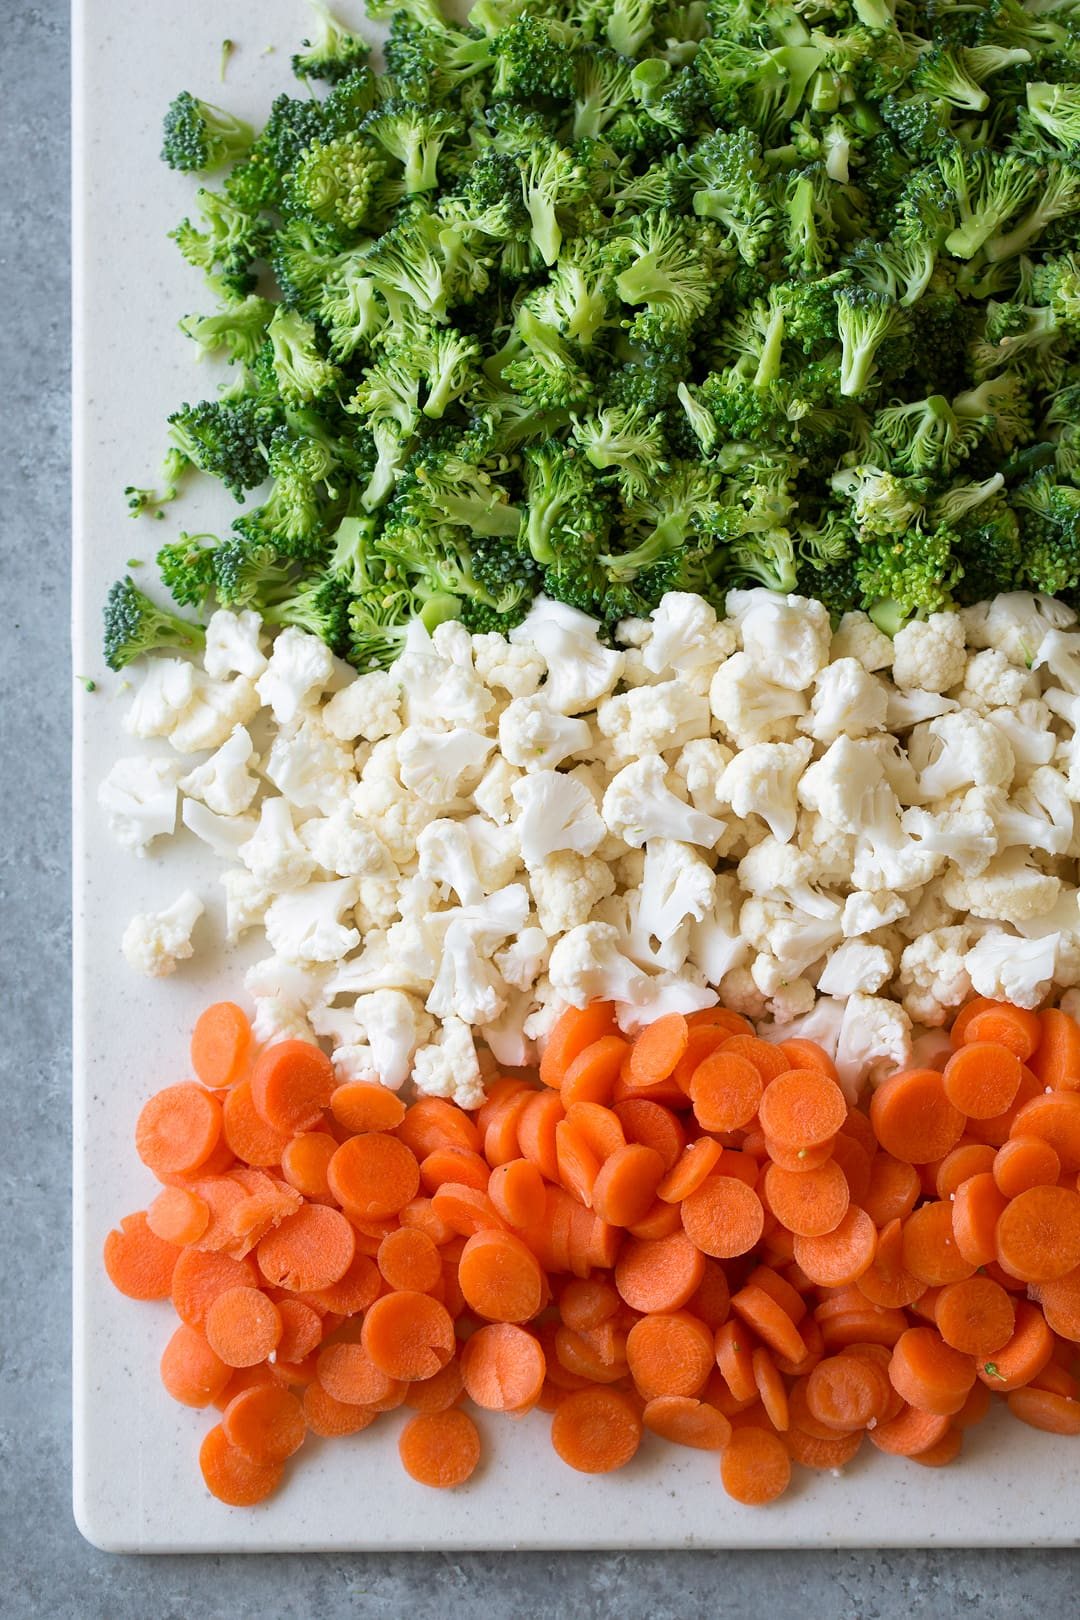 Broccoli Carrot Cauliflower Coleslaw Salad